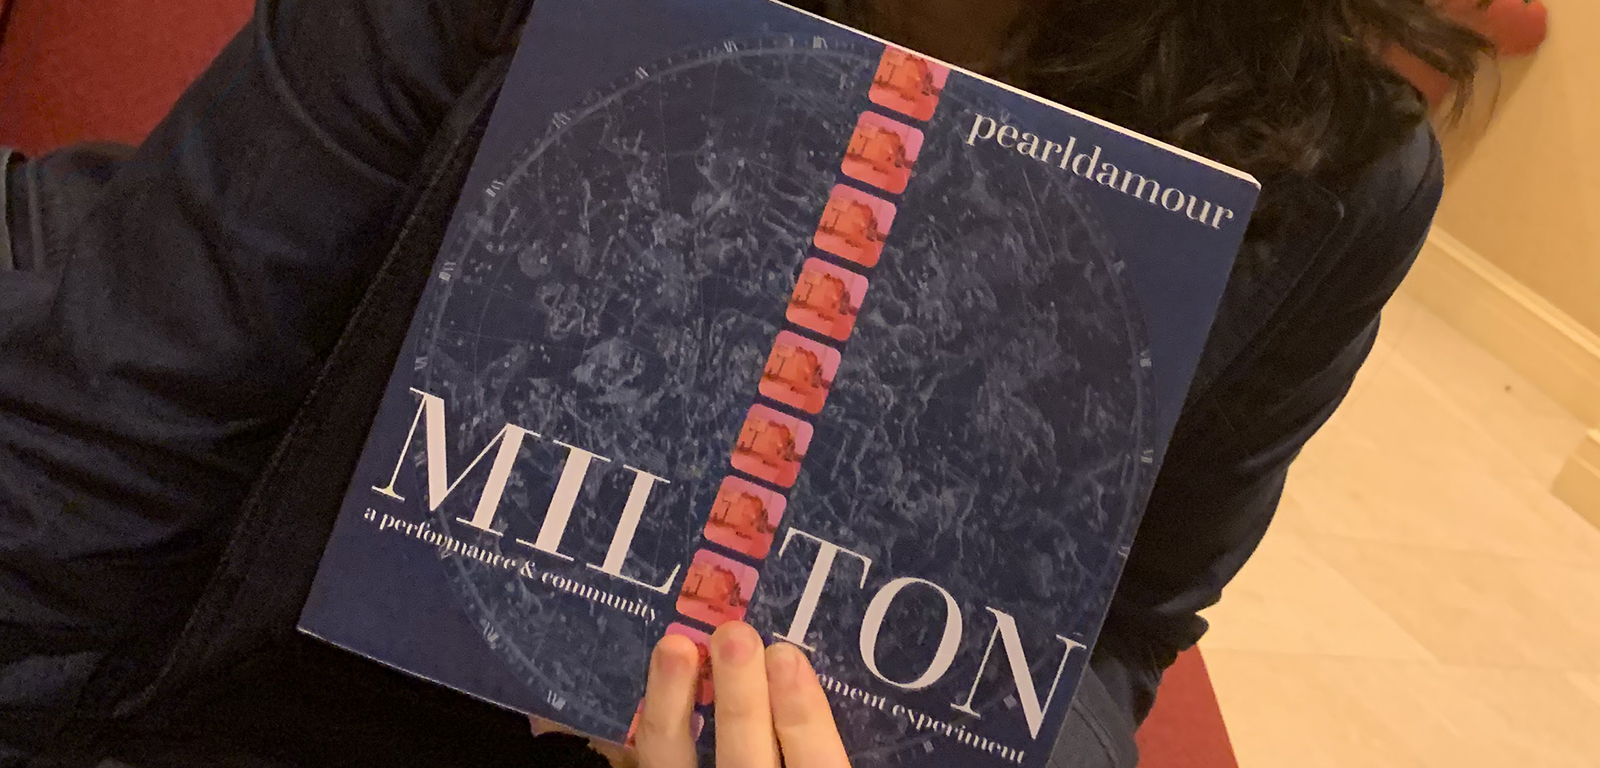 The MILTON book is out